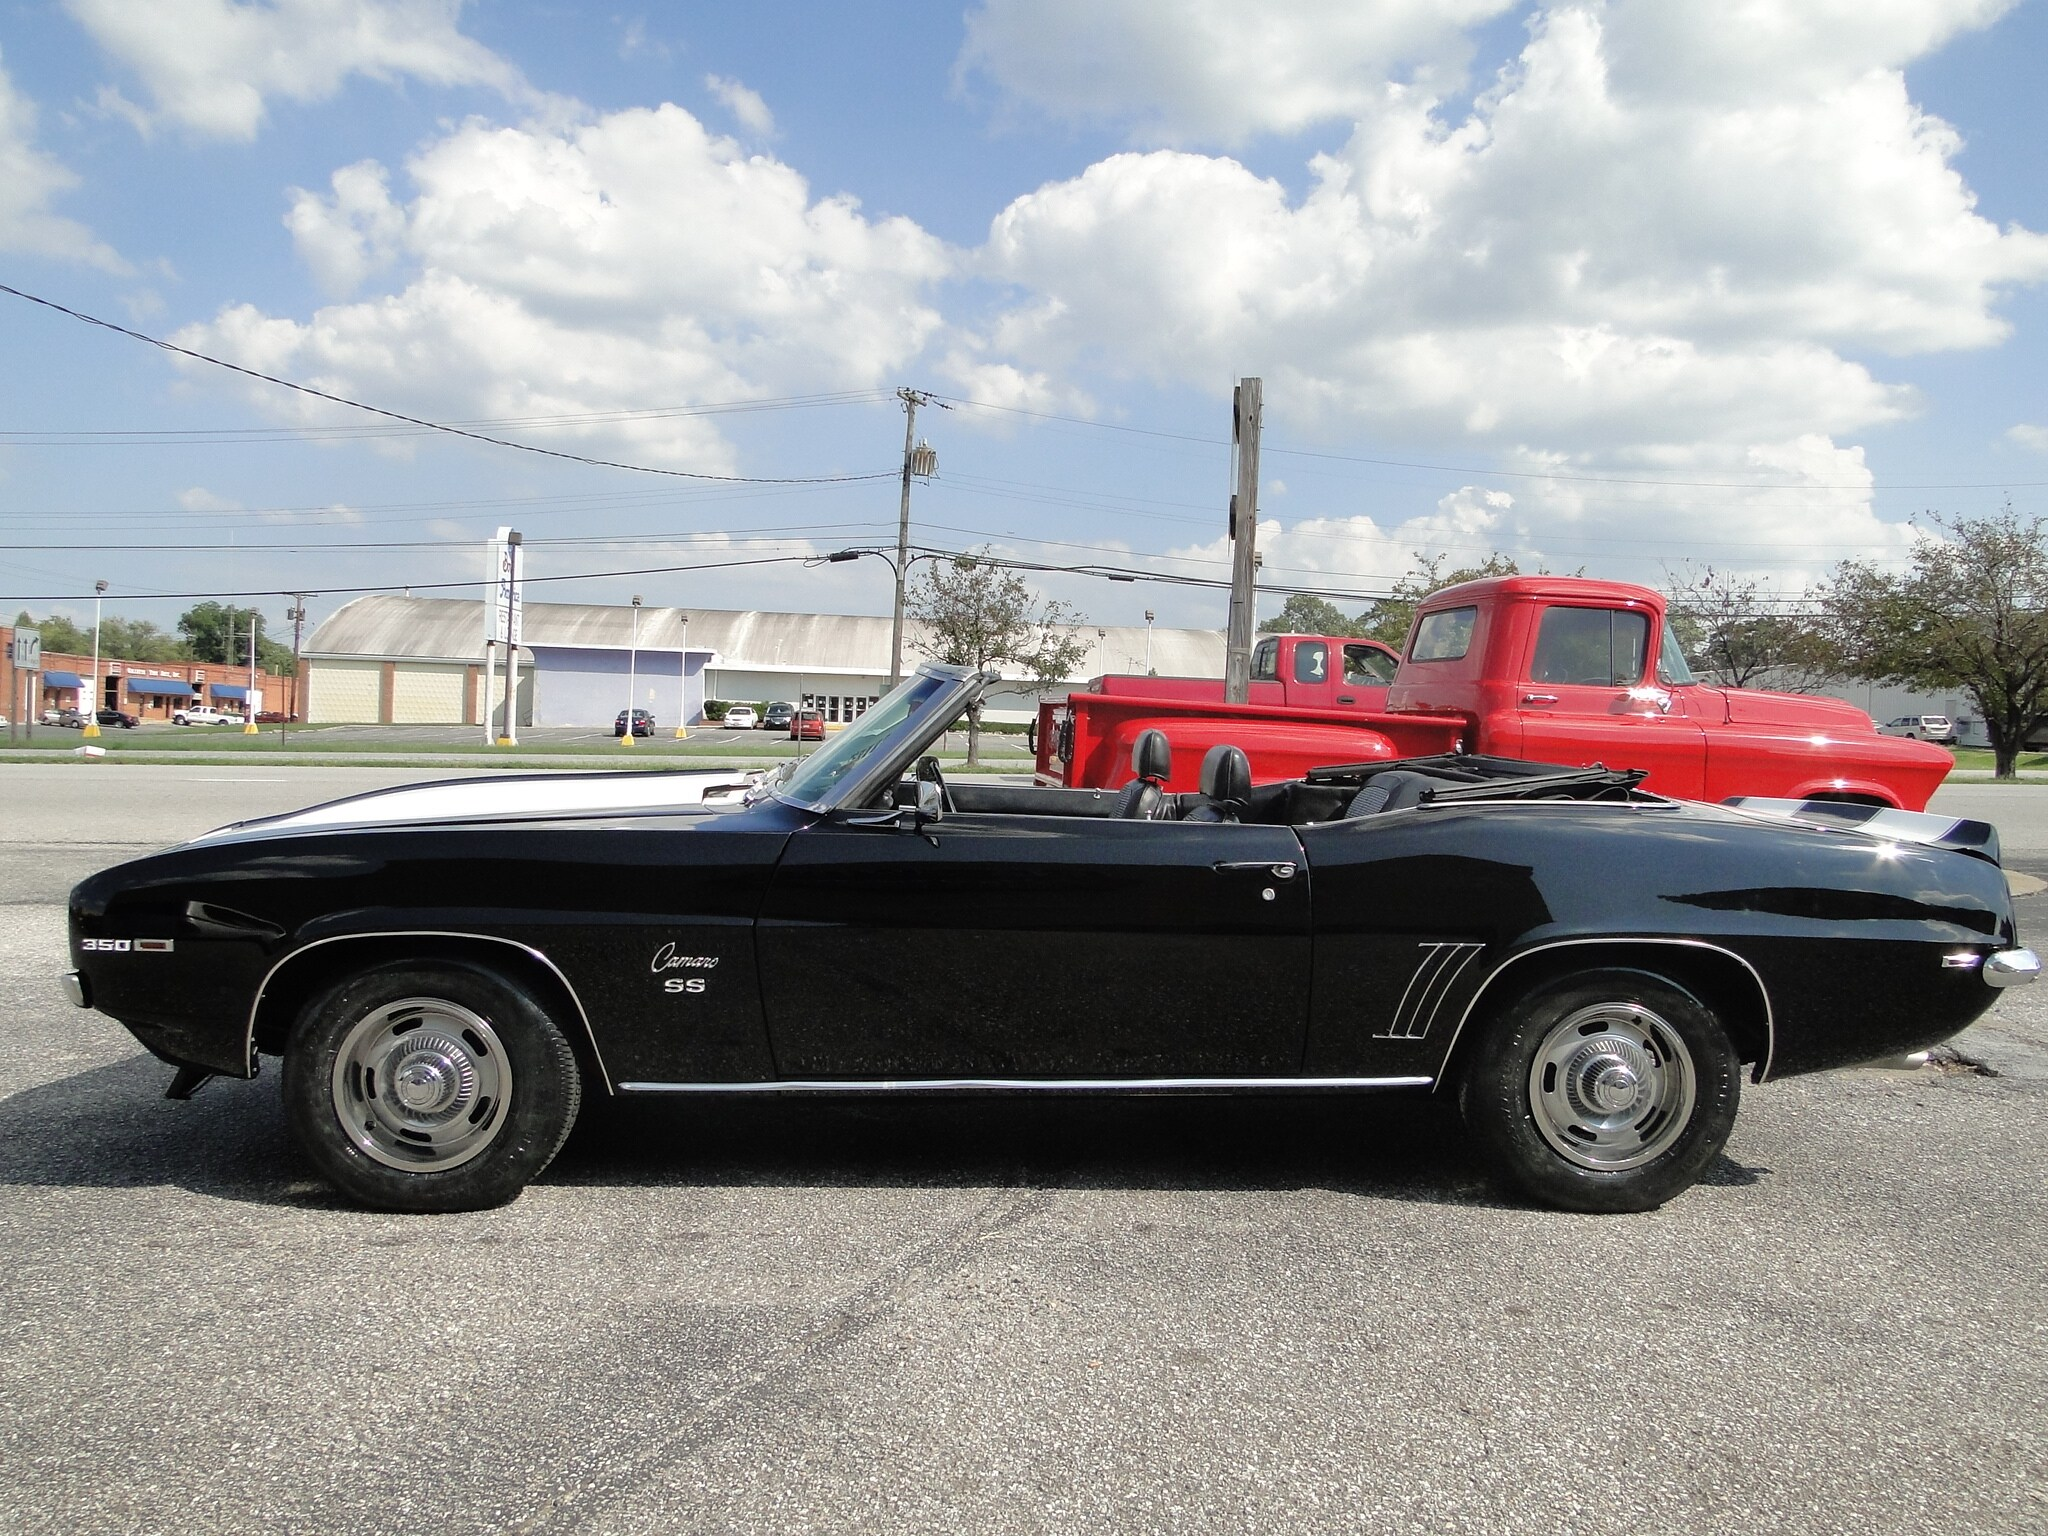 used 1969 chevrolet camaro convertible for sale near baltimore md. Cars Review. Best American Auto & Cars Review